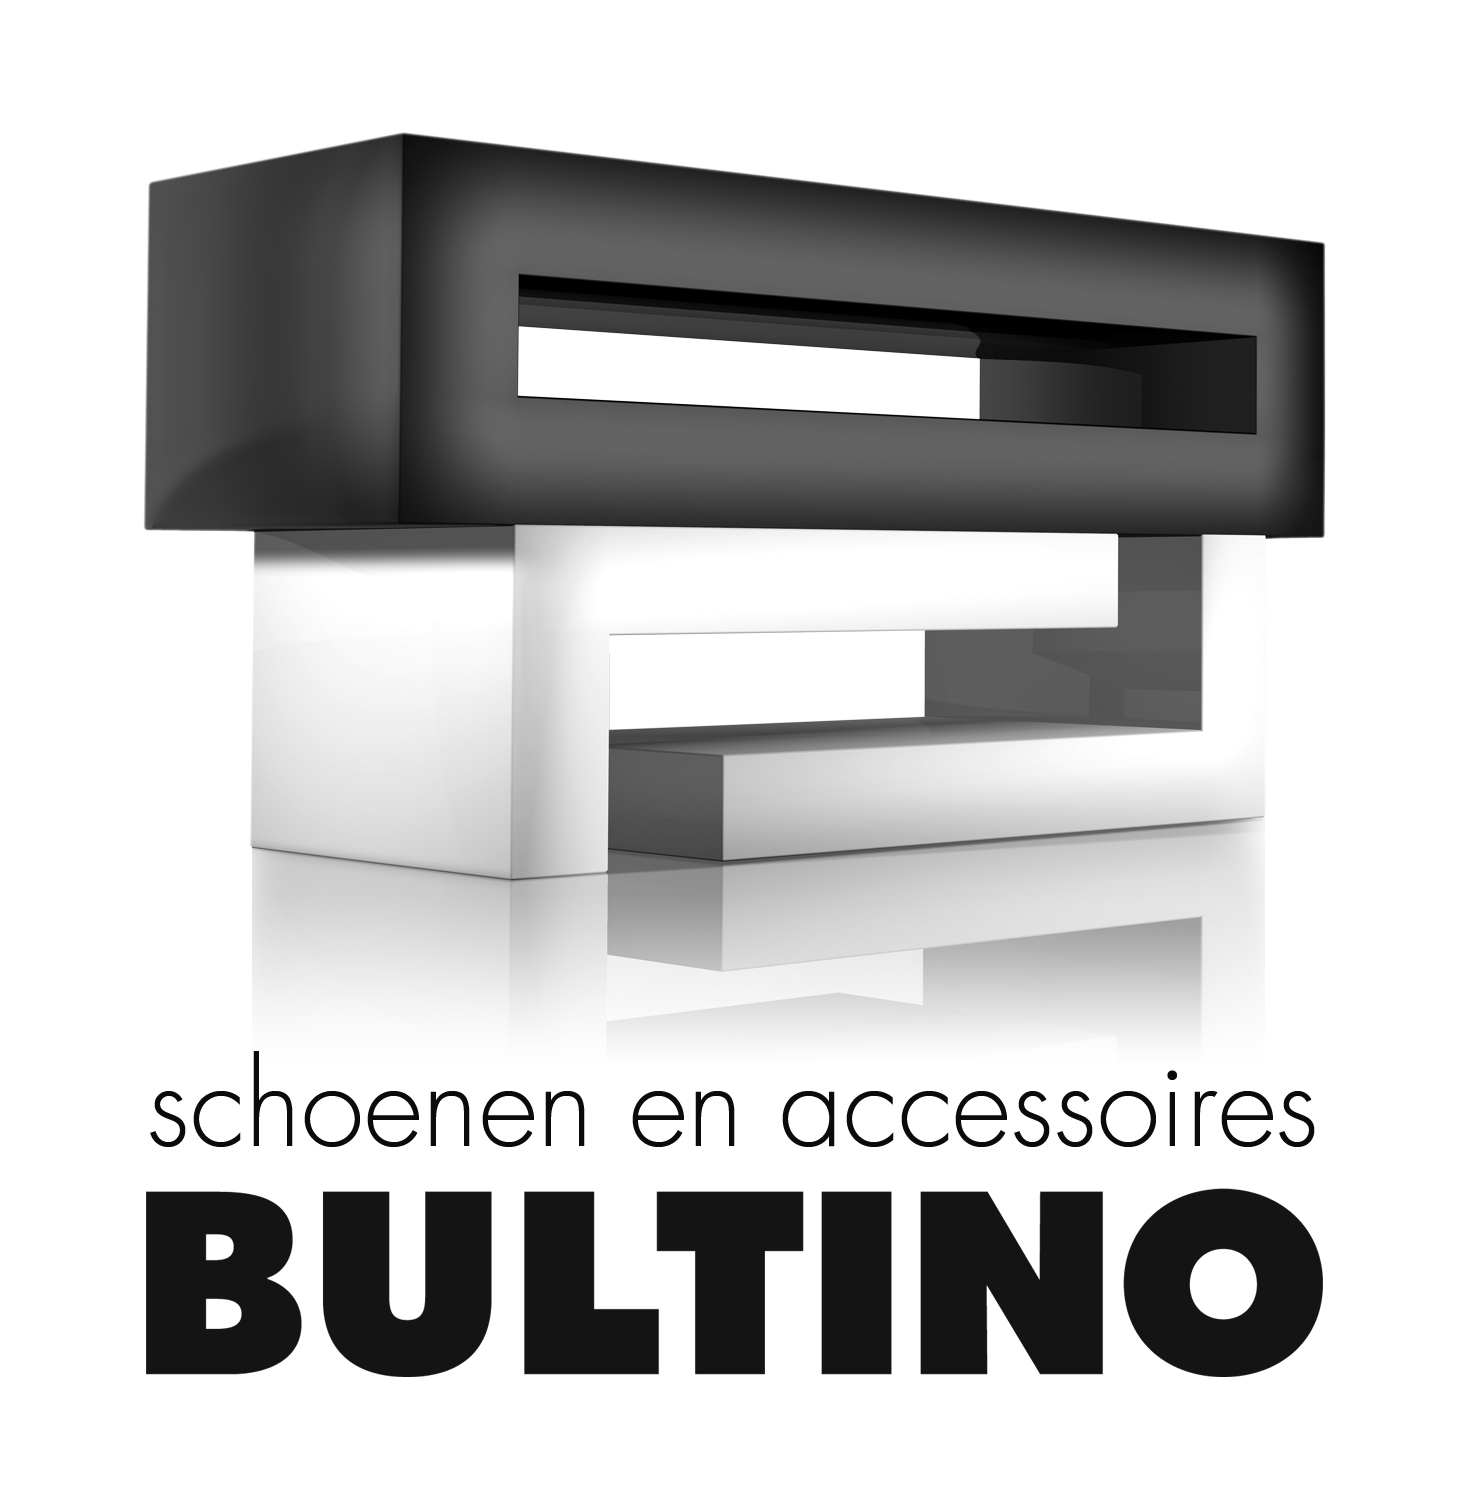 Bultino icon